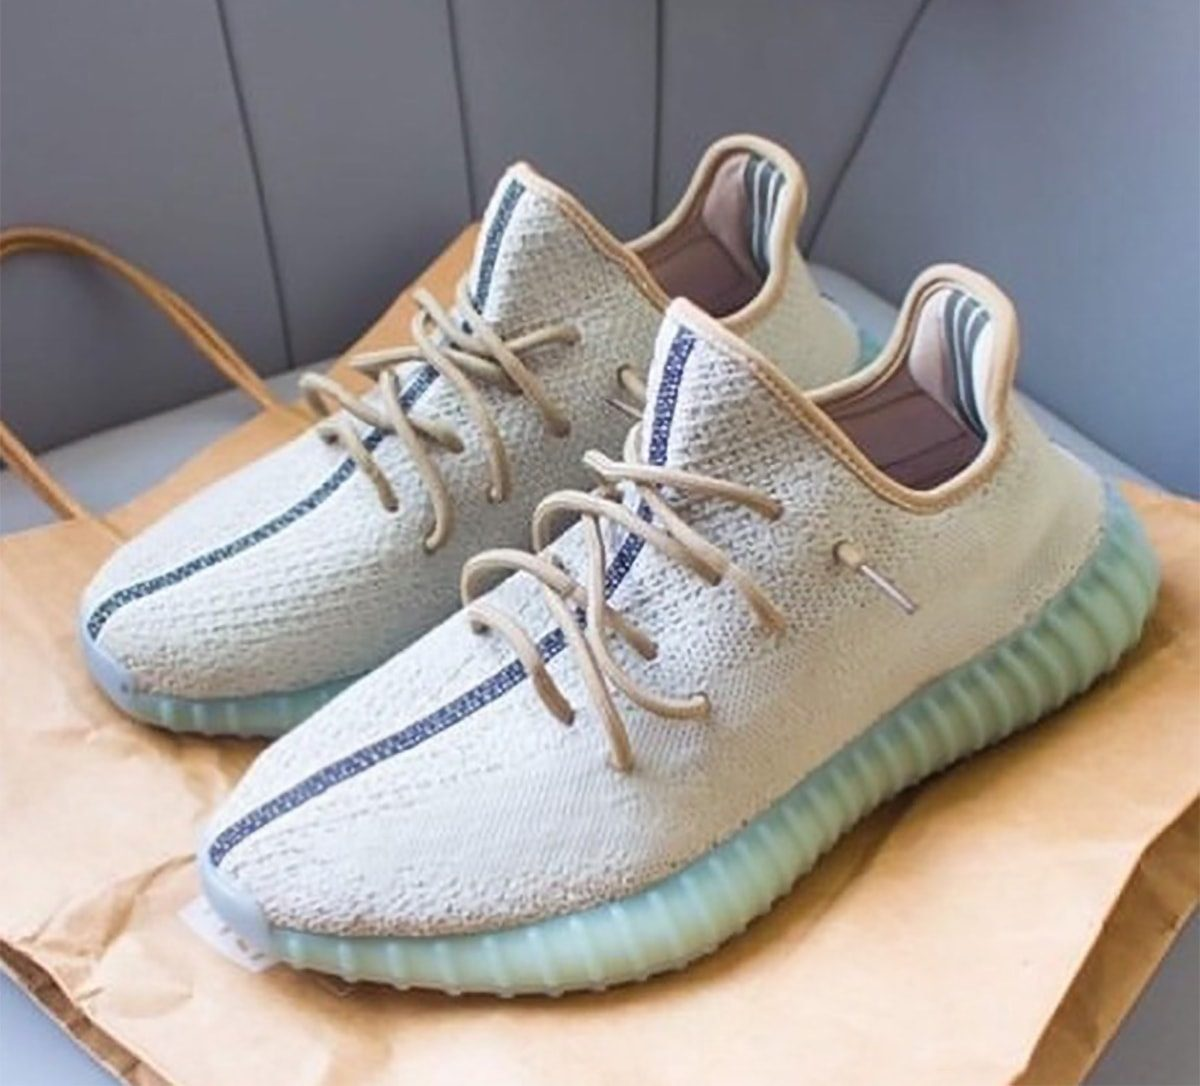 New adidas YEEZY 350 V2 Appears in Bone and Aqua Blue for Spring 2021